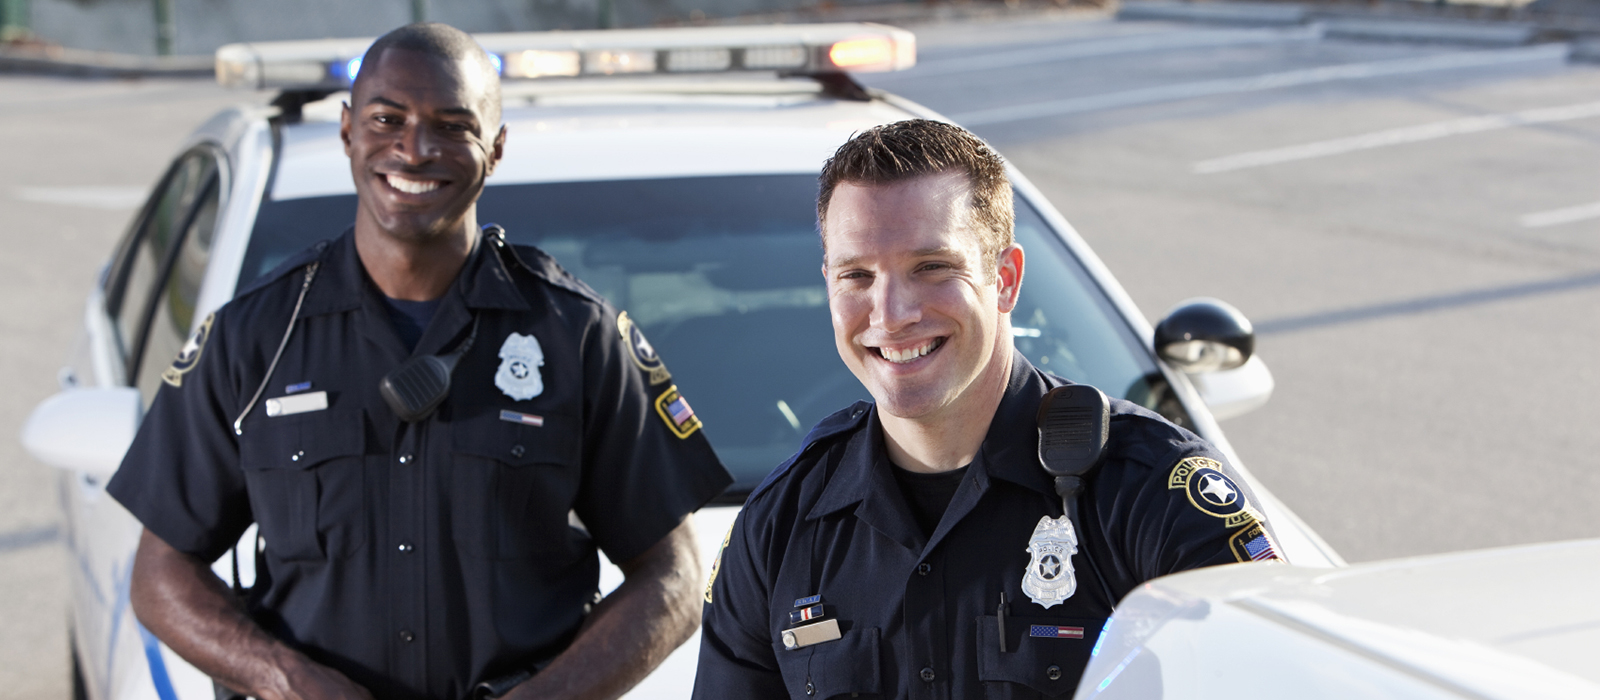 Two California police officers.